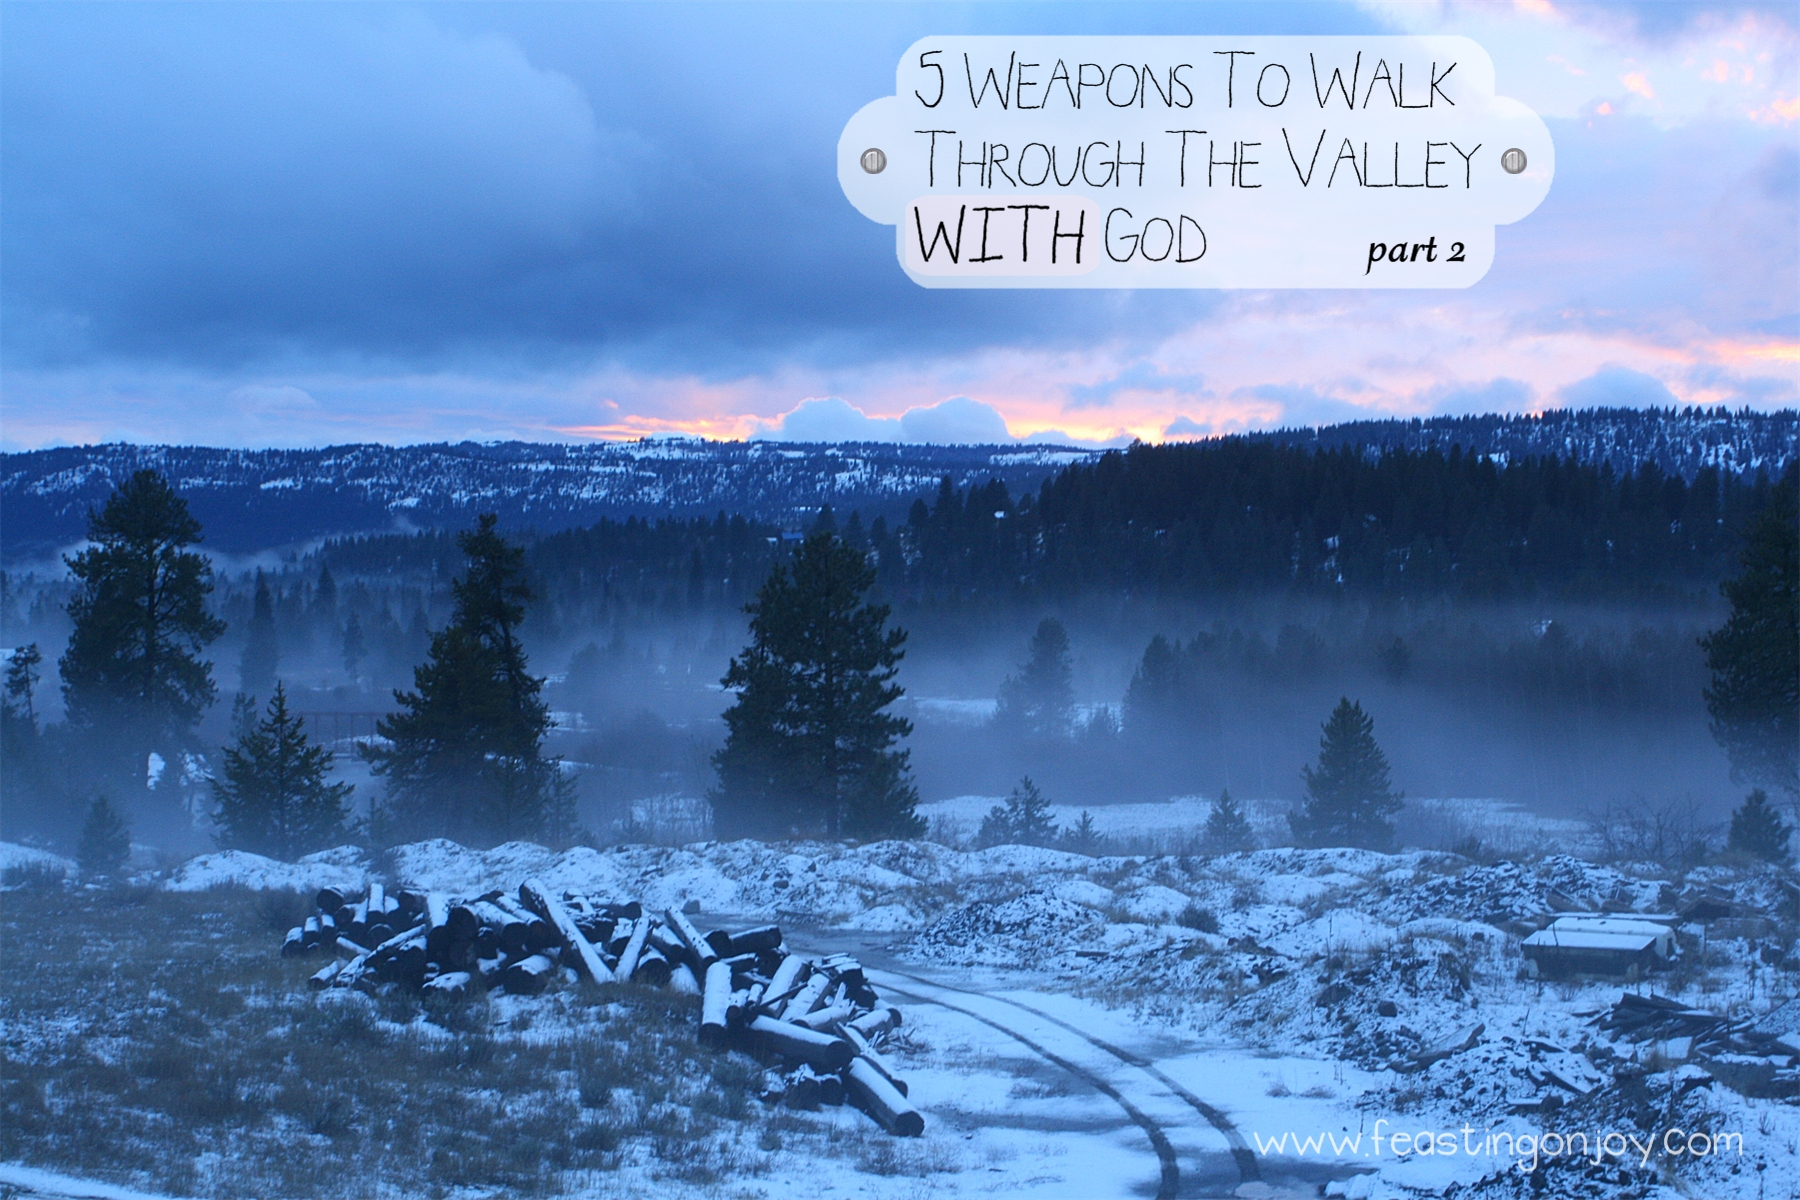 5 Weapons To Walk Through The Valley WITH God. Part 2